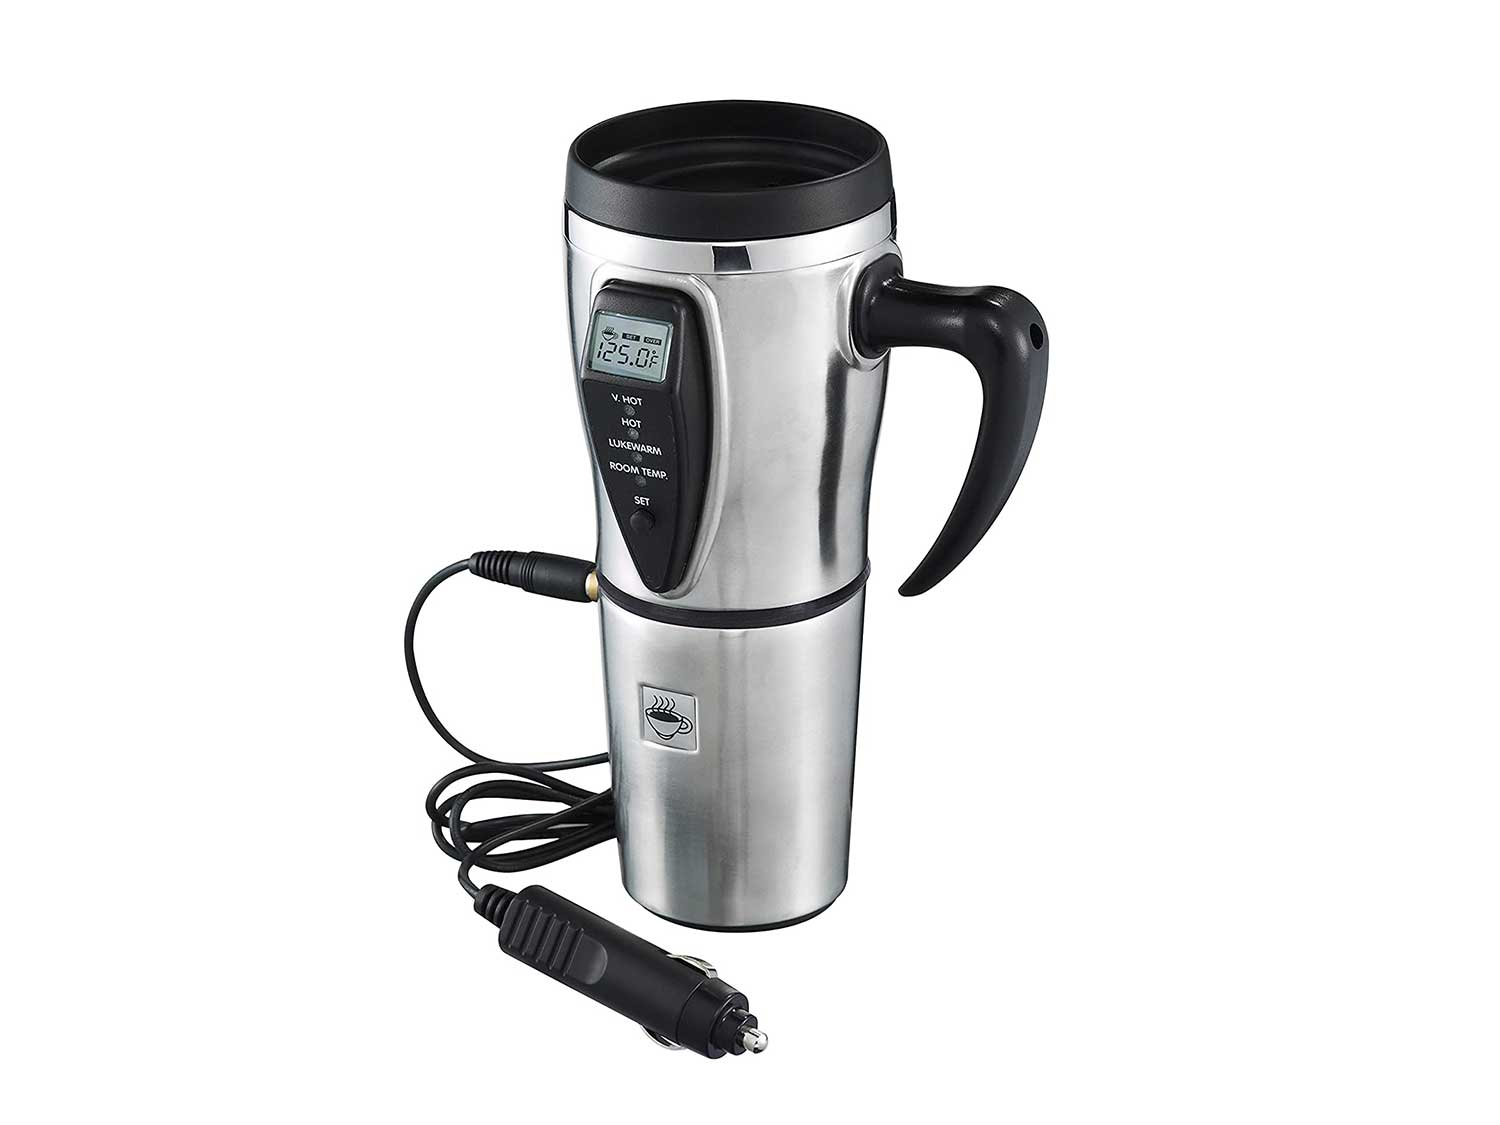 Heated Smart Travel Mug with Temperature Control - 16 ounce- 12V - Stainless Steel